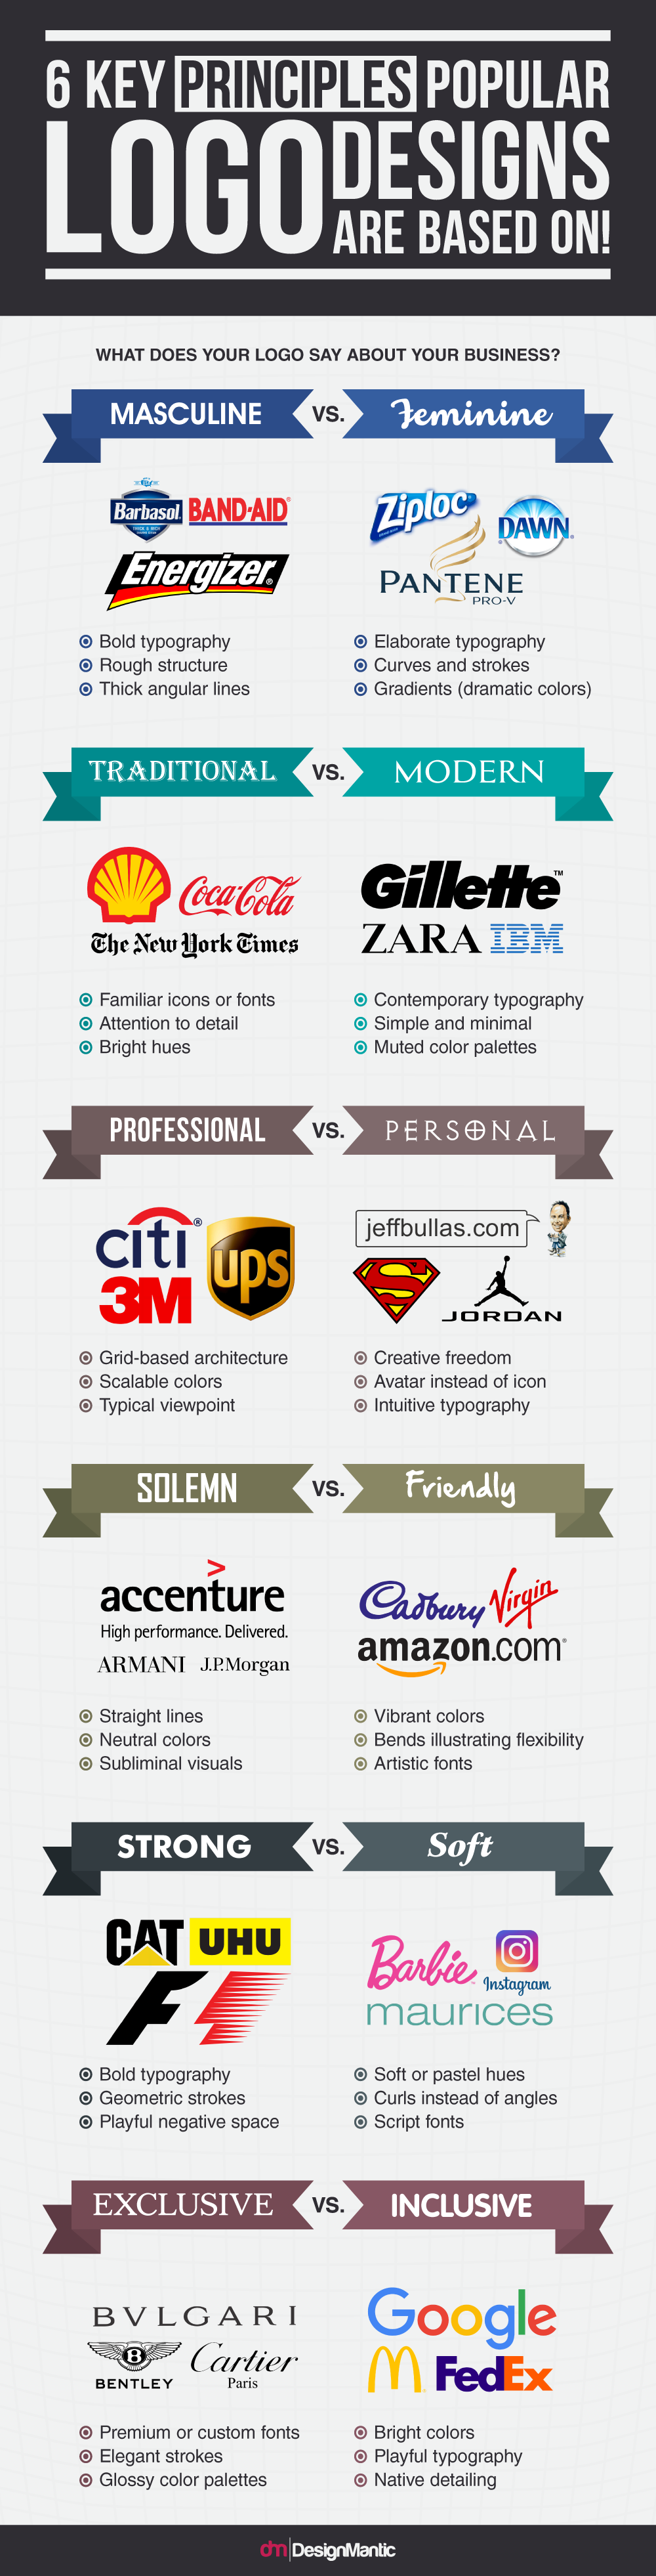 6 Key Principles Popular Logo Designs Are Based On